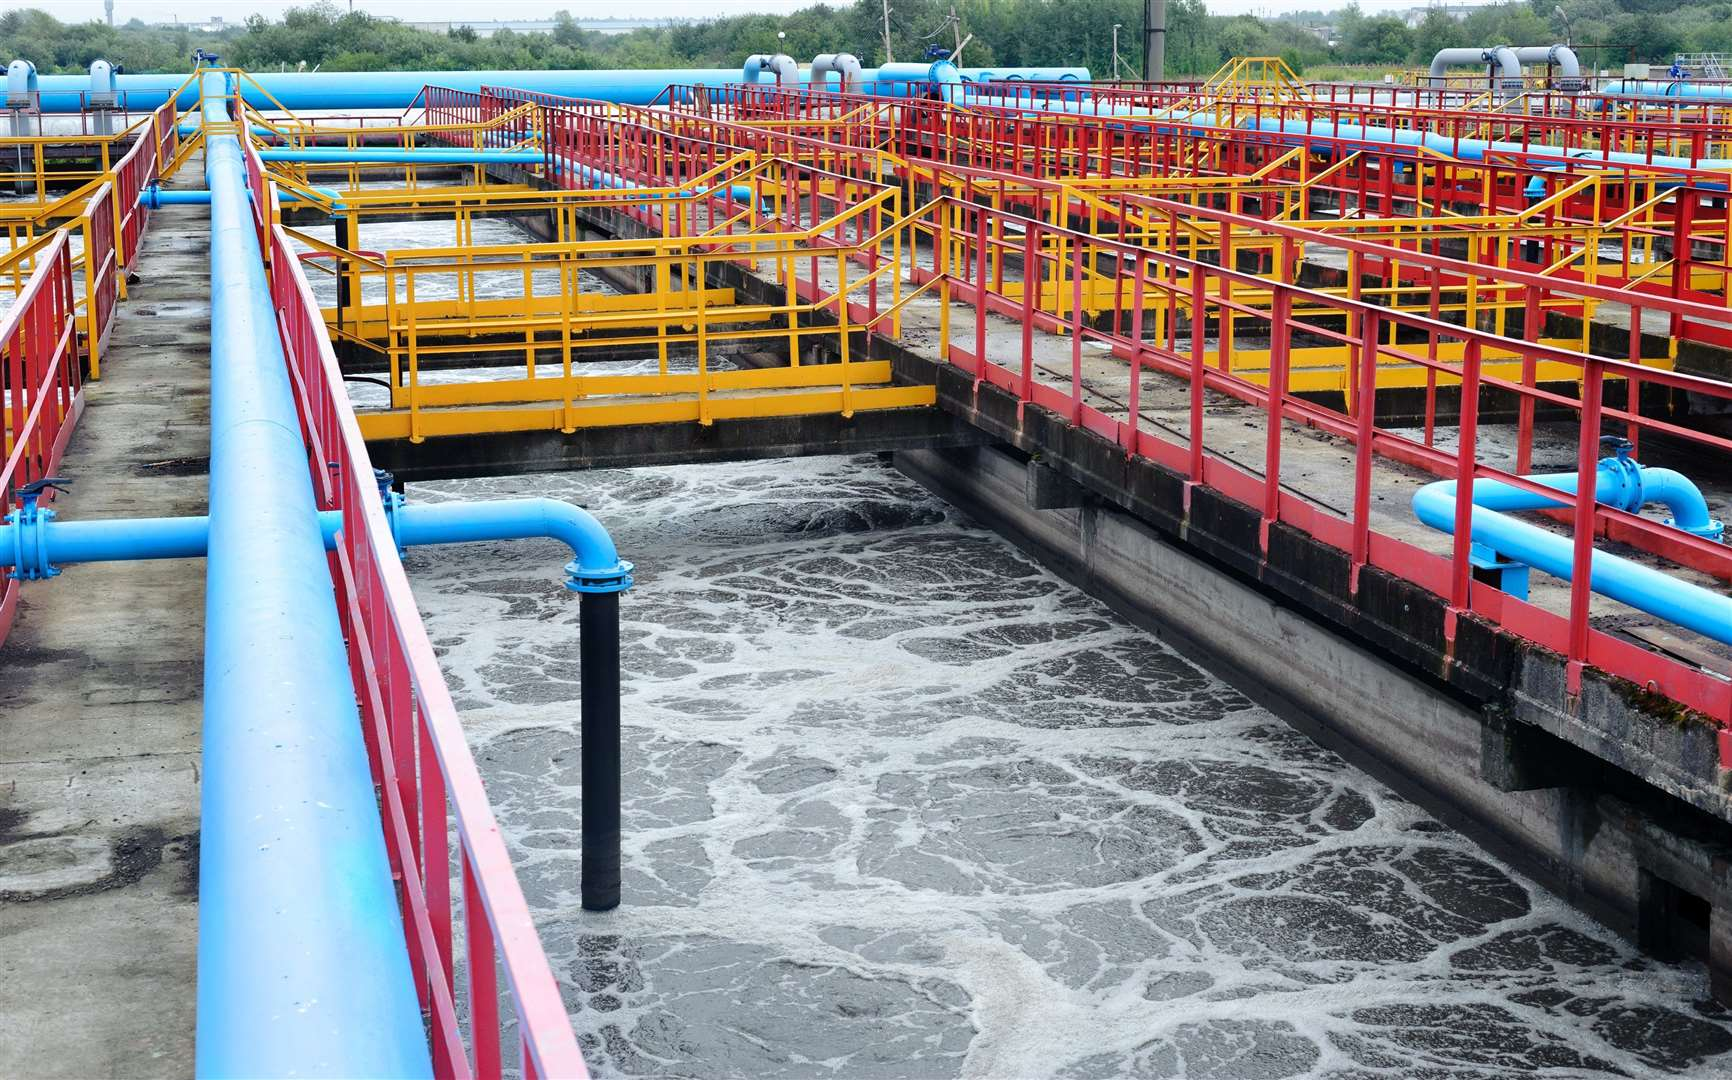 The Environment Agency says waste water treatment works may need to release partially treated water because of chemical shortages